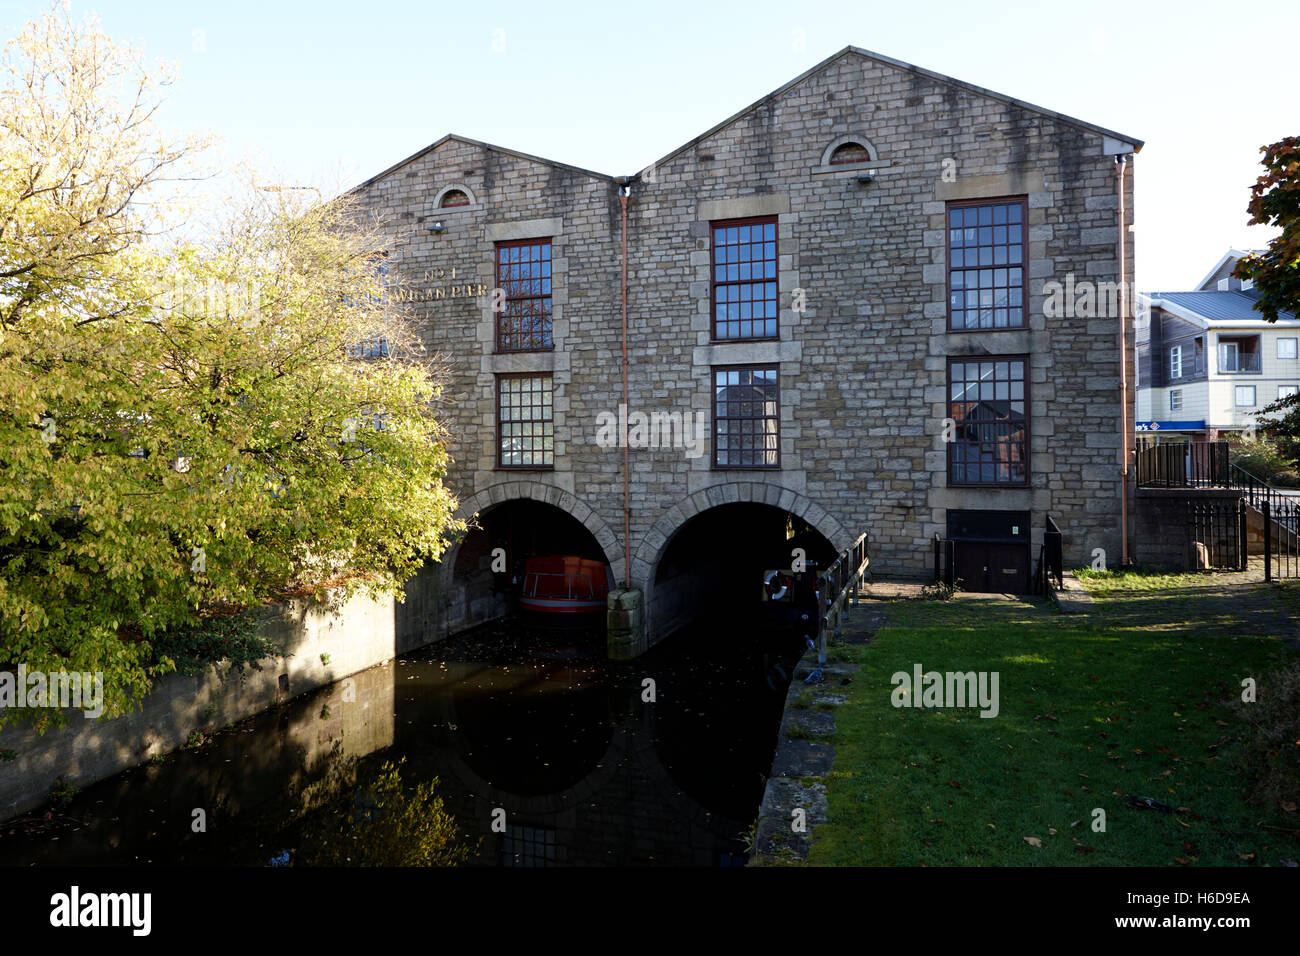 original canal terminus Wigan Pier on the Liverpool Leeds Canal England United Kingdom - Stock Image